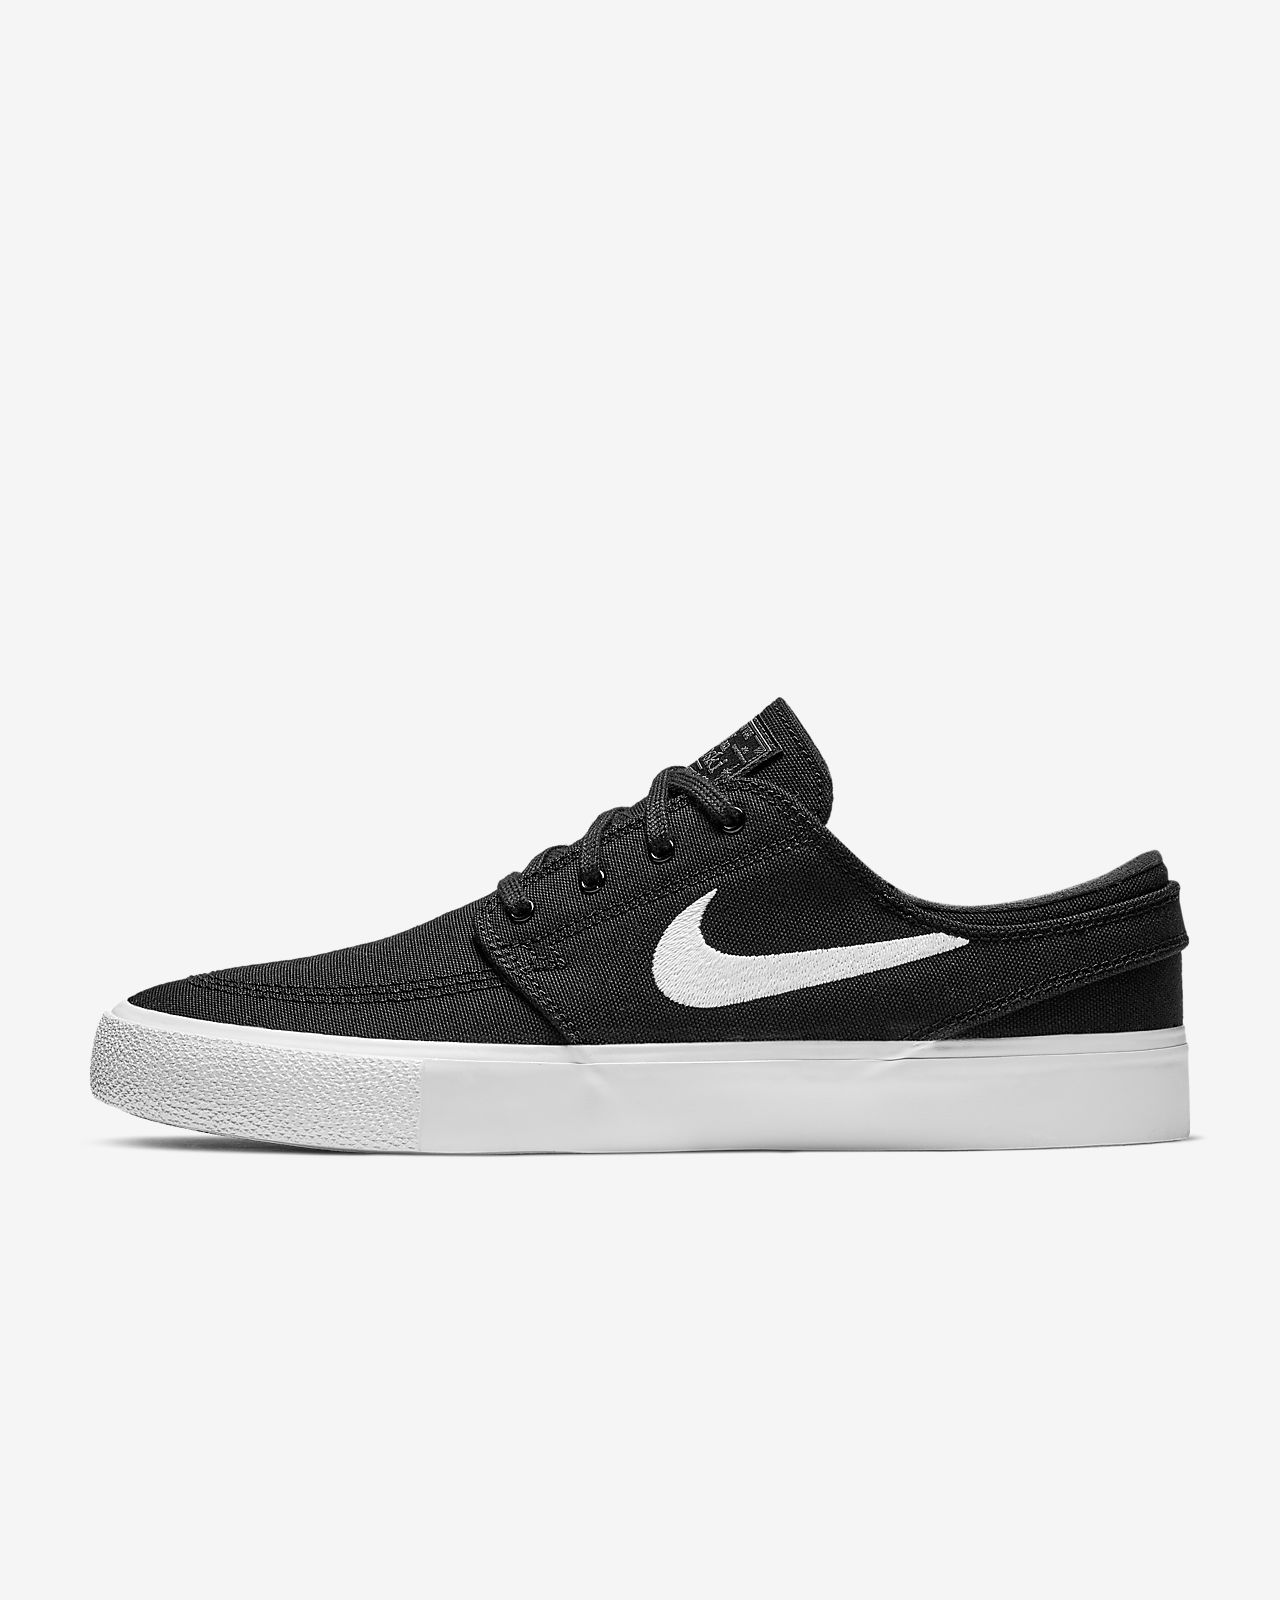 big sale 6c88d a8487 ... Skateboardsko Nike SB Zoom Janoski Canvas RM